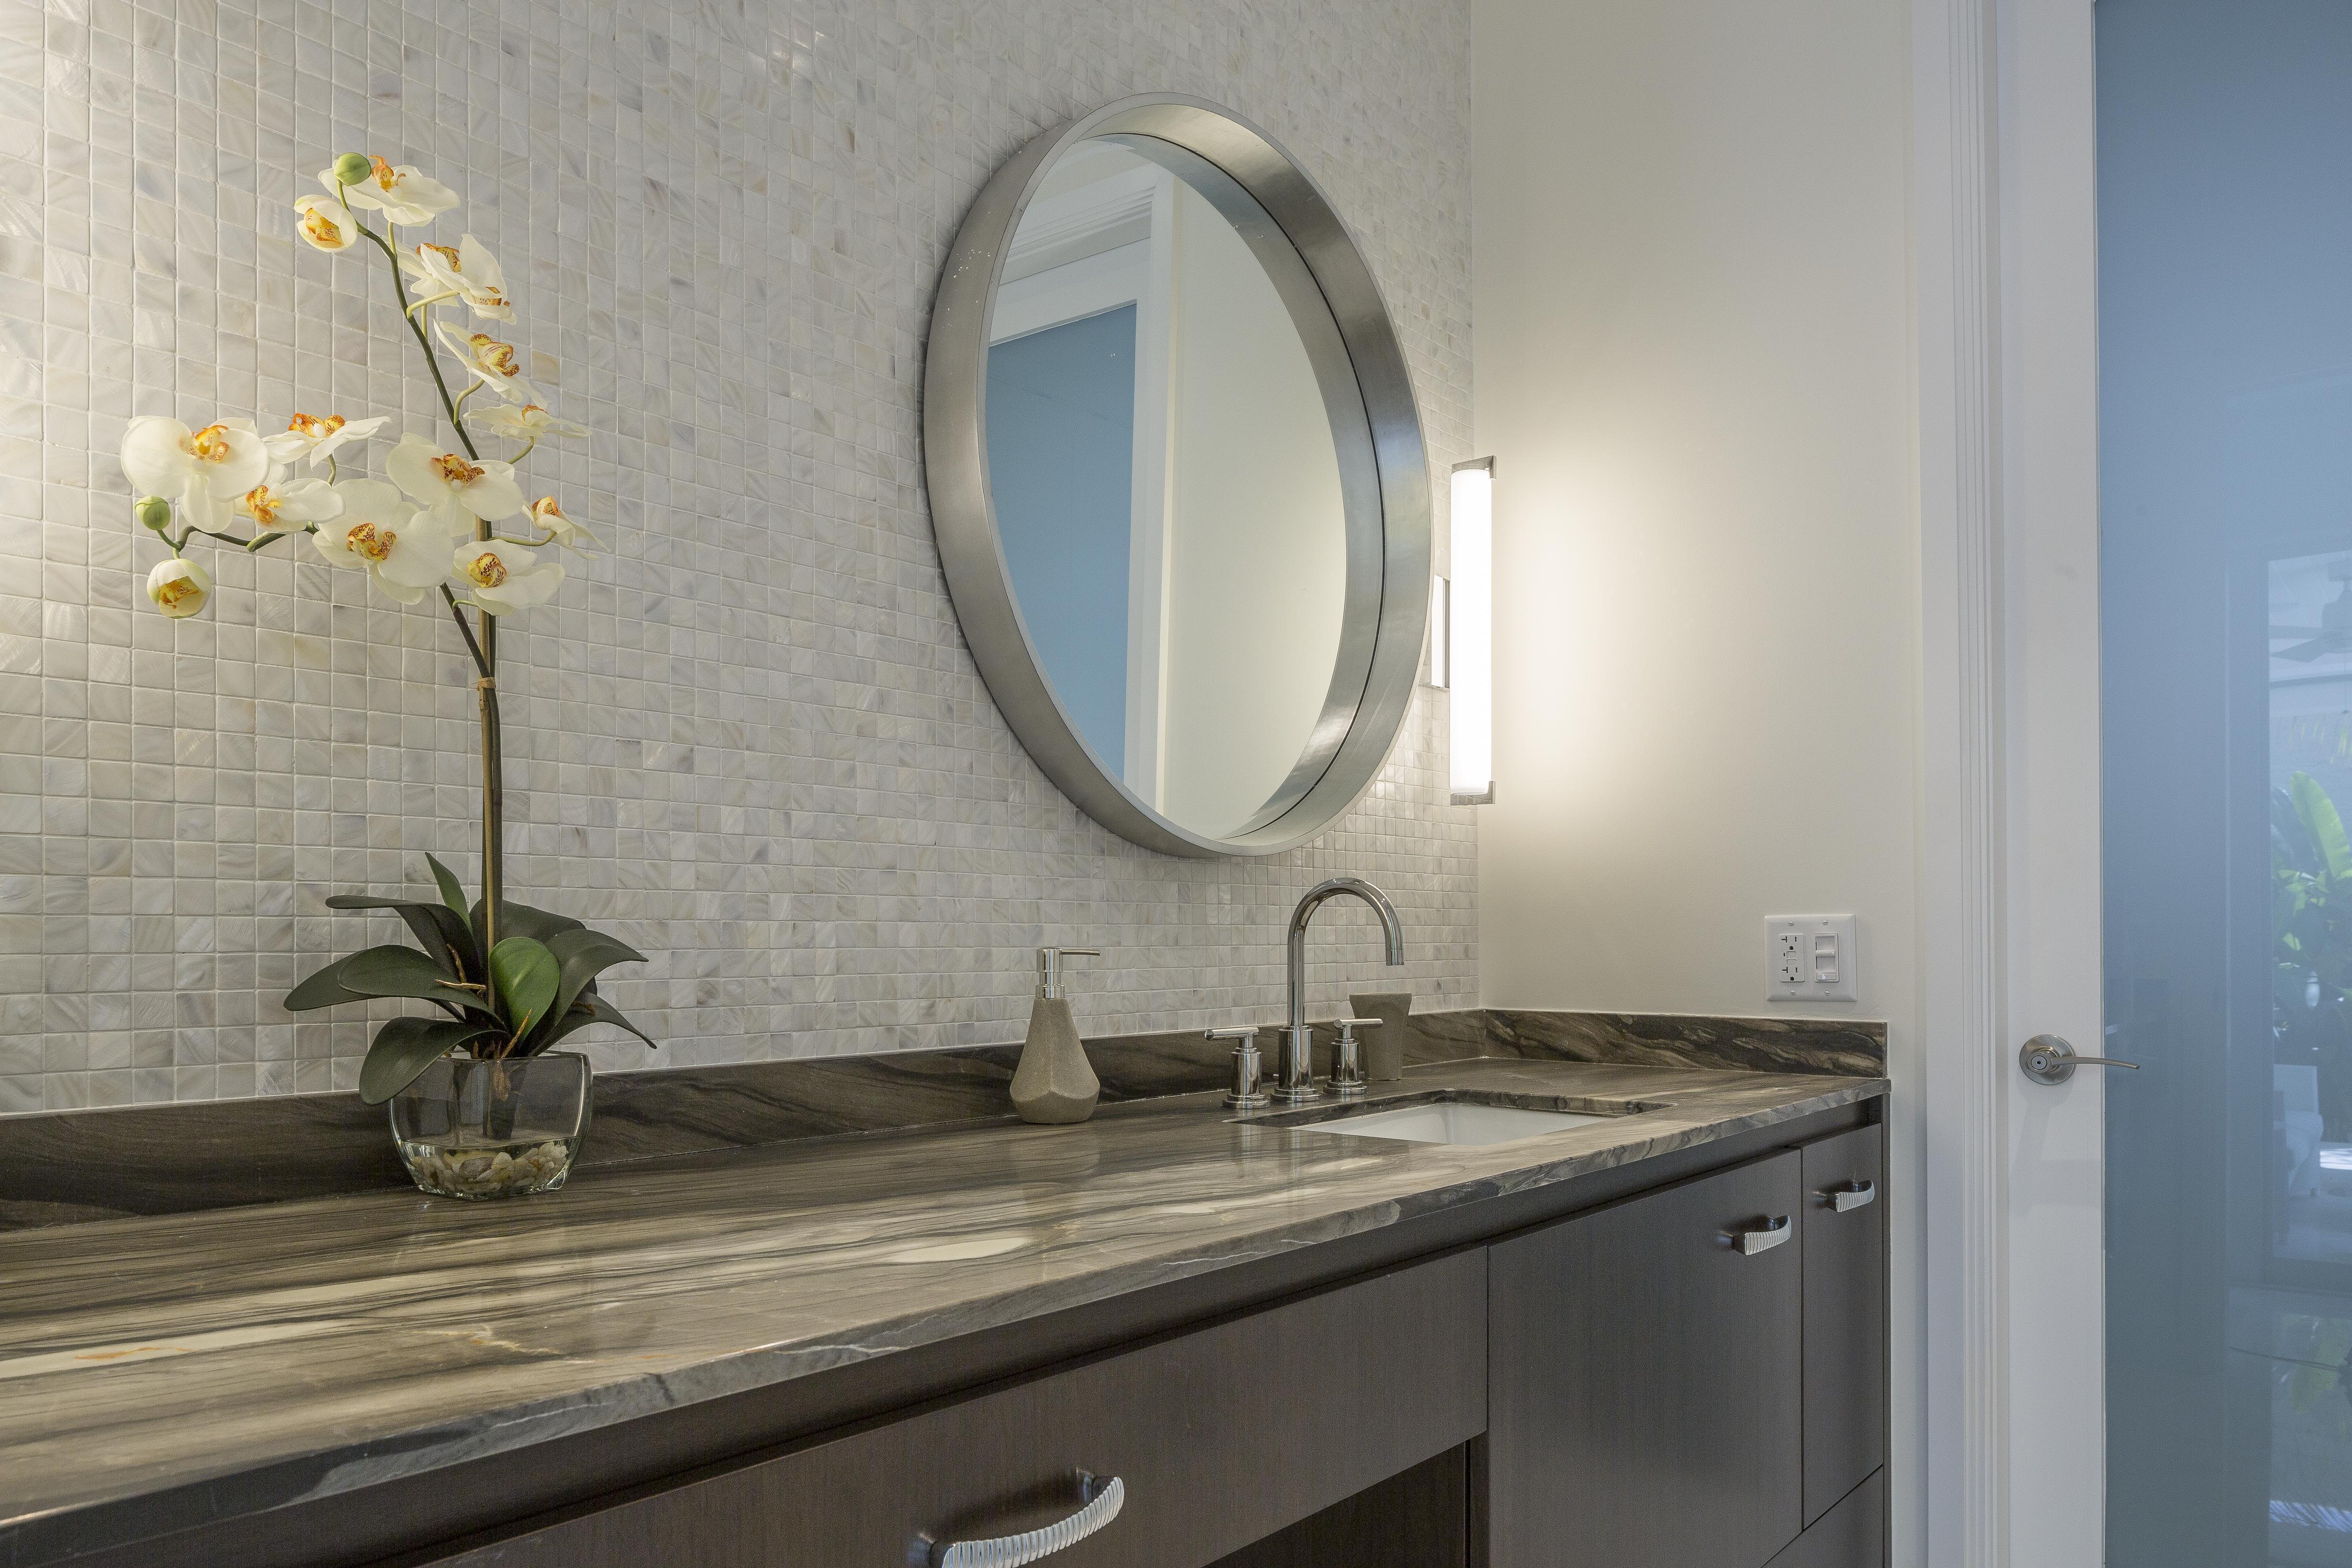 Bathroom features dark marble countertop over dark wood cabinetry, with light tile backsplash holding metallic framed mirror.